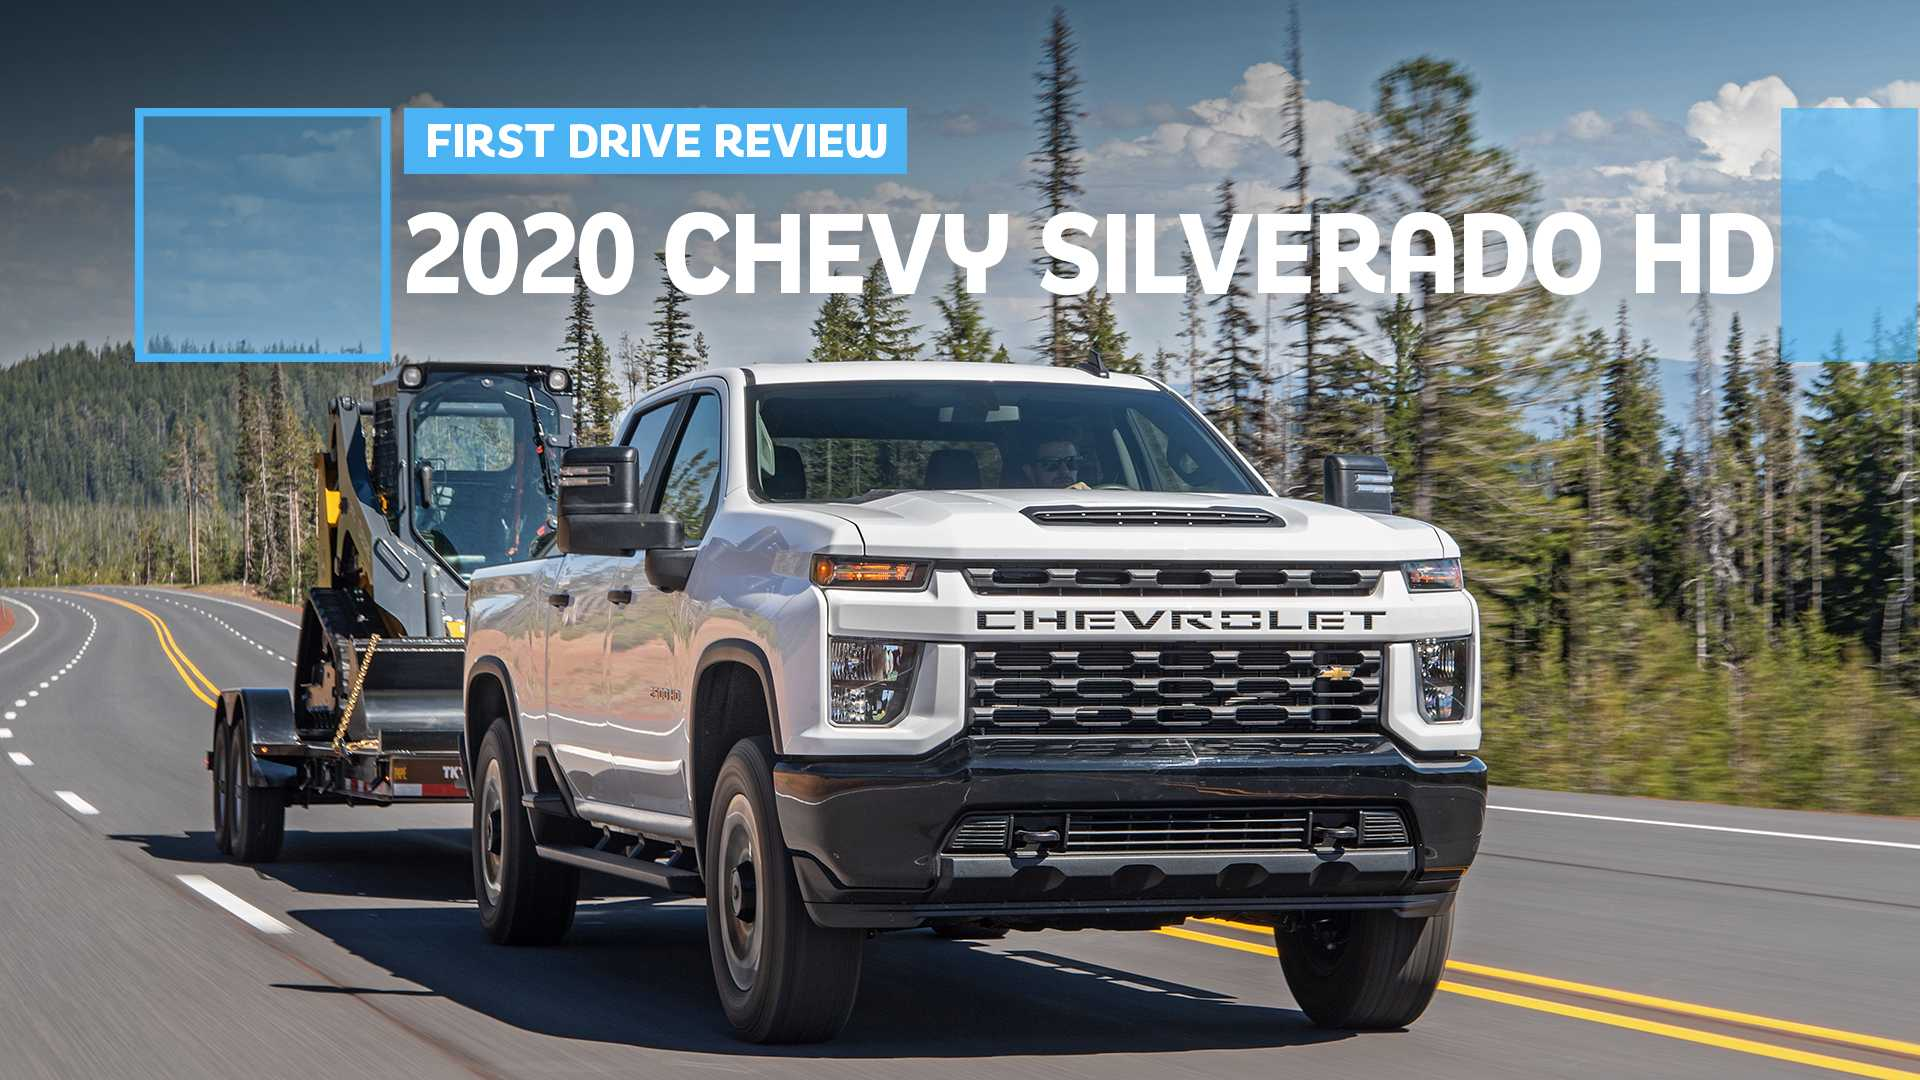 2020 Chevrolet Silverado Hd First Drive Punishing Capability